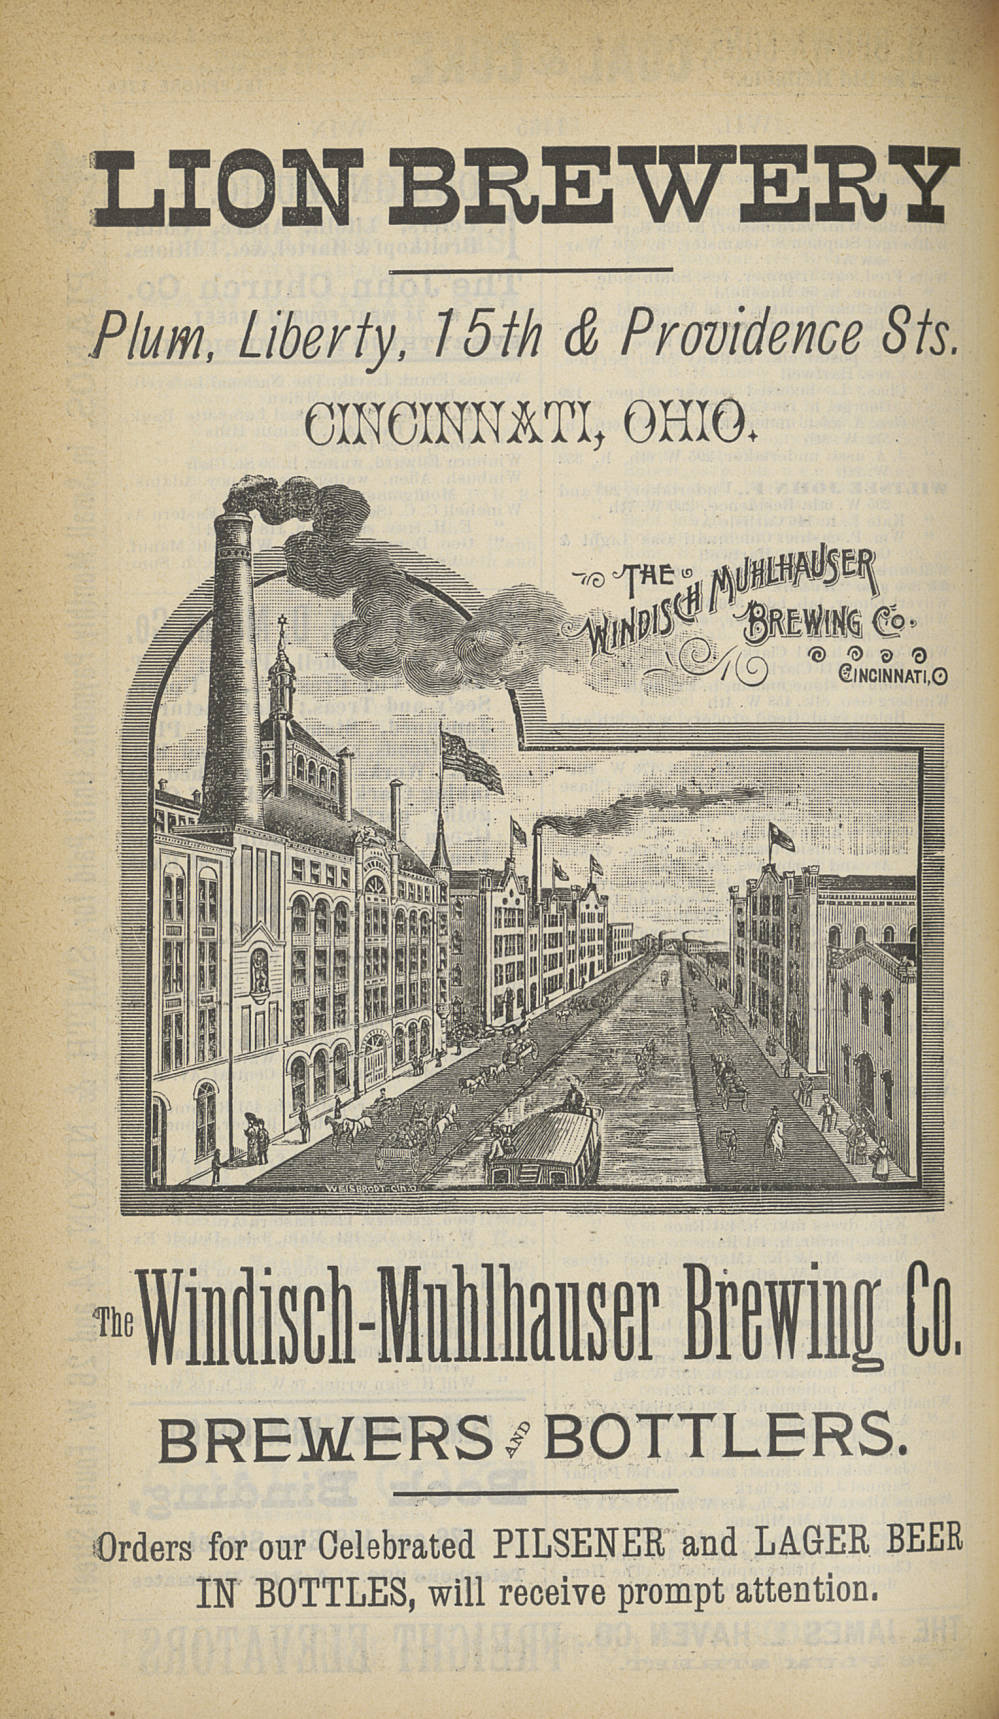 Windisch-Muhlhauser Lion Brewery advertisement / DATE: 1889 / COLLECTION: Public Library of Cincinnati and Hamilton County, Joseph S. Stern, Jr. Cincinnati Room / Image courtesy of the digital archive of The Public Library of Cincinnati and Hamilton County // Published: 5.3.18